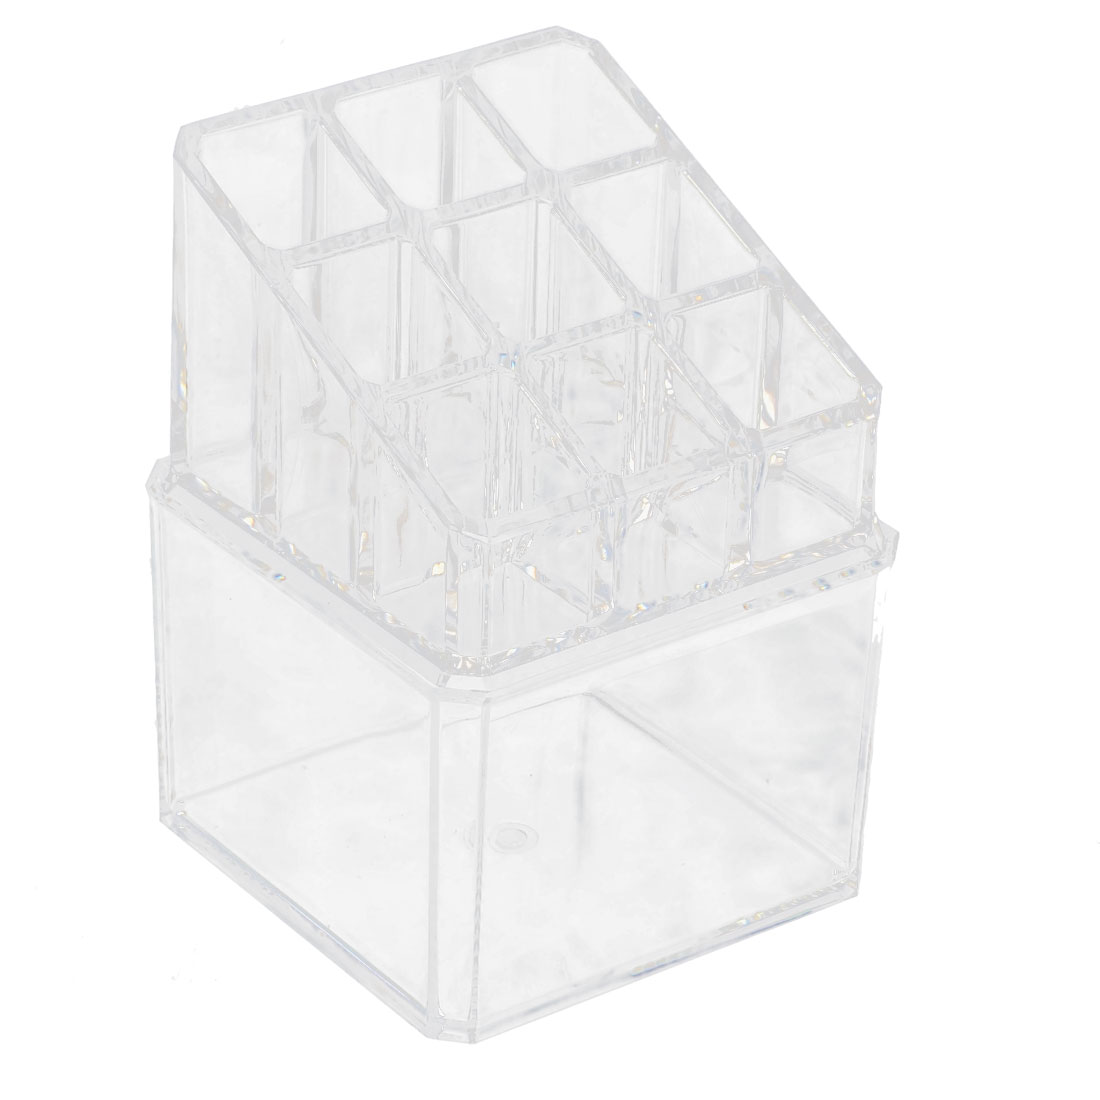 Acrylic Cosmetic Swab Q-tip Storage Box Lipstick Display Stand Makeup Organizer Set 2 in 1